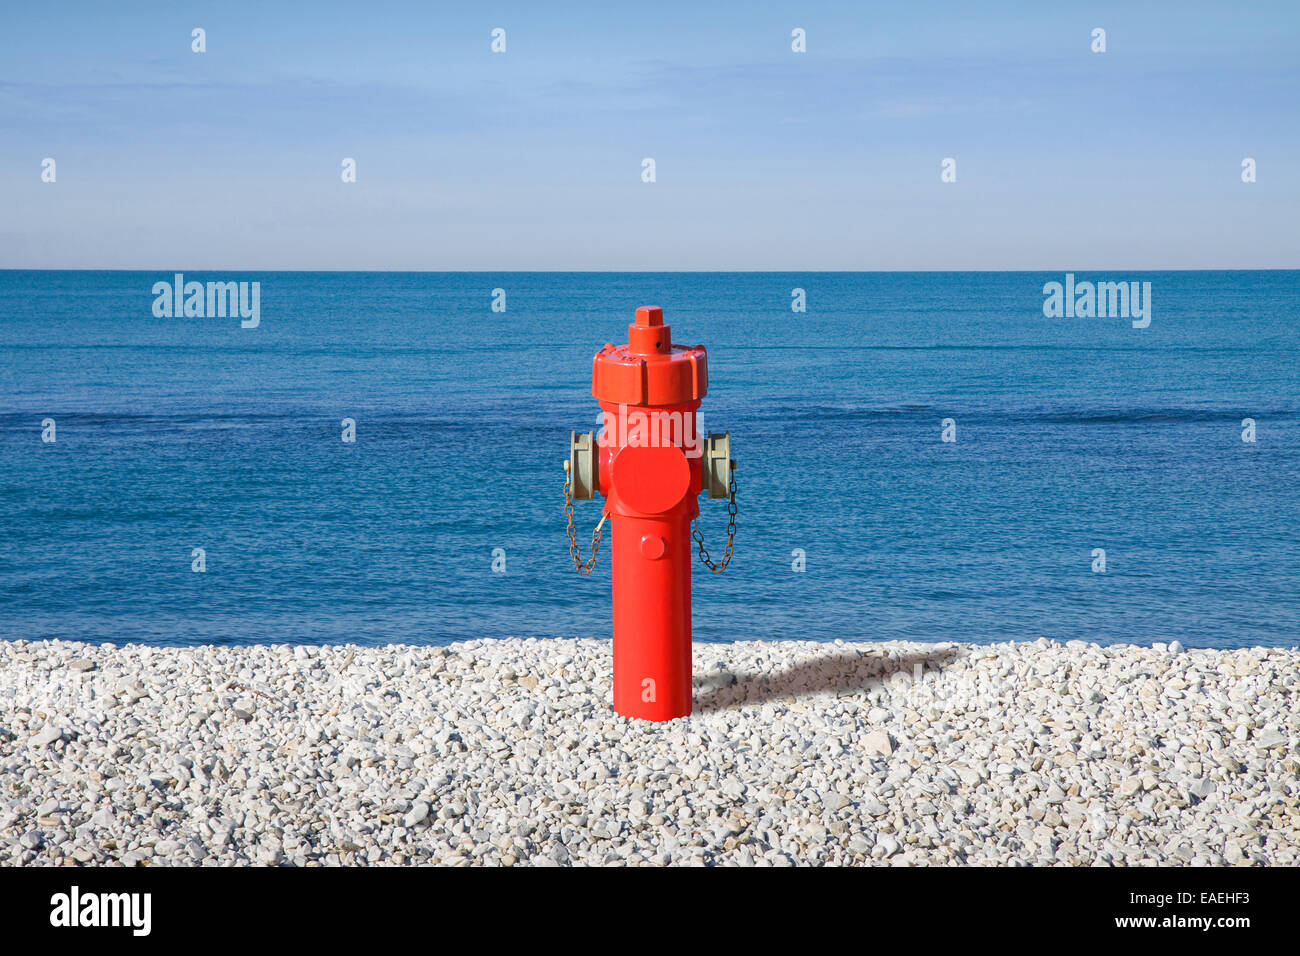 A hydrant at the seaside. Plenty of water: concept image - Stock Image